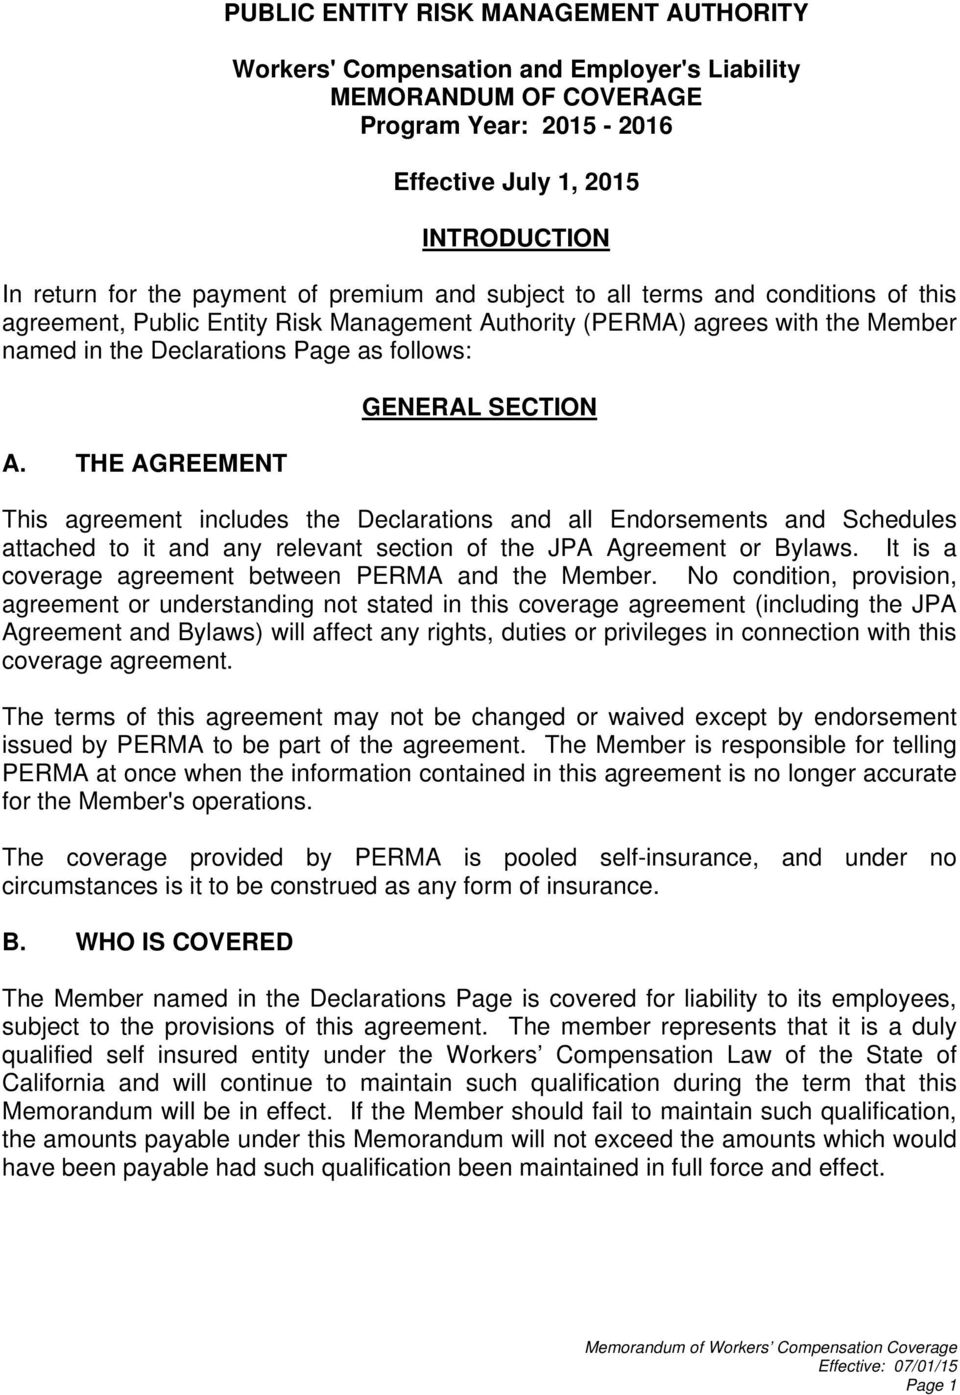 THE AGREEMENT GENERAL SECTION This agreement includes the Declarations and all Endorsements and Schedules attached to it and any relevant section of the JPA Agreement or Bylaws.